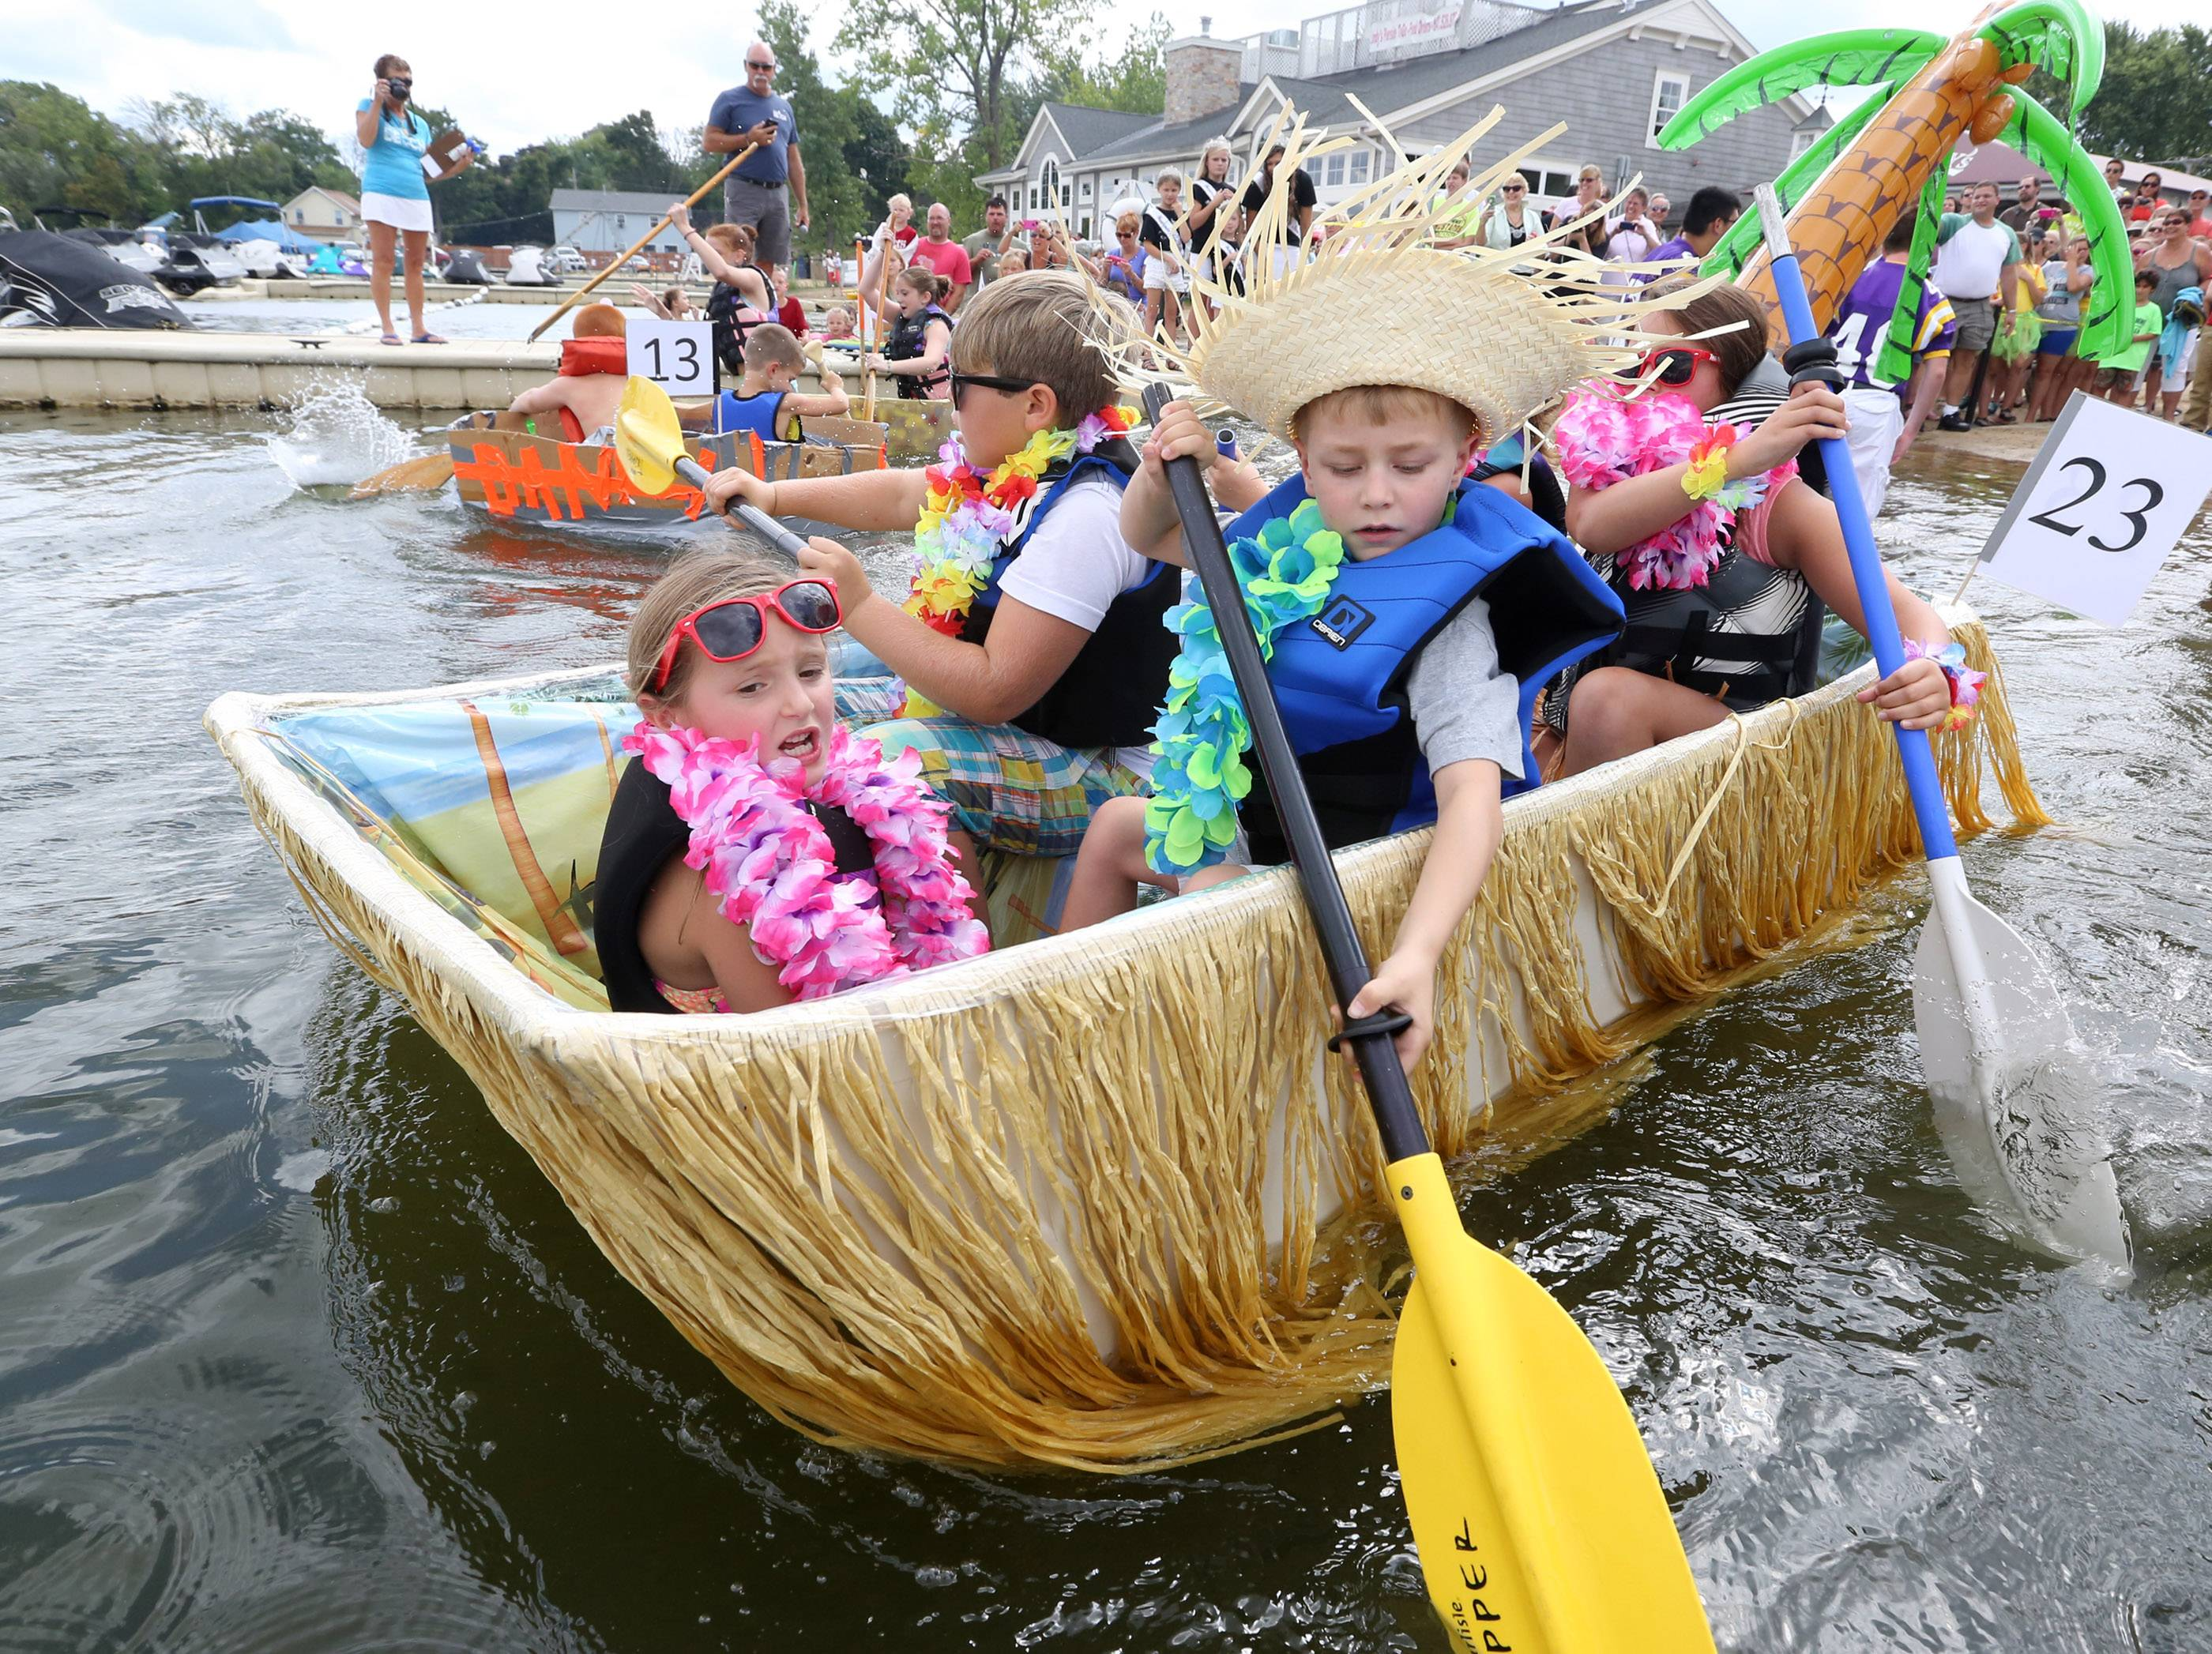 Maia Cordova, 7, of Wauconda, front, captains the boat as Austin Miller, 7, of Grayslake, left, front row of the boat, Max Testa, 9, of Cary, and Laindy Cordova, 7, back row right, paddle the boat to first place in the children's division of the 13th Annual Labor Day Cardboard Boat Races at Lindy's Landing on Saturday in Wauconda. Not shown in photograph in the boat is Sophia Testa, 11, of Cary.